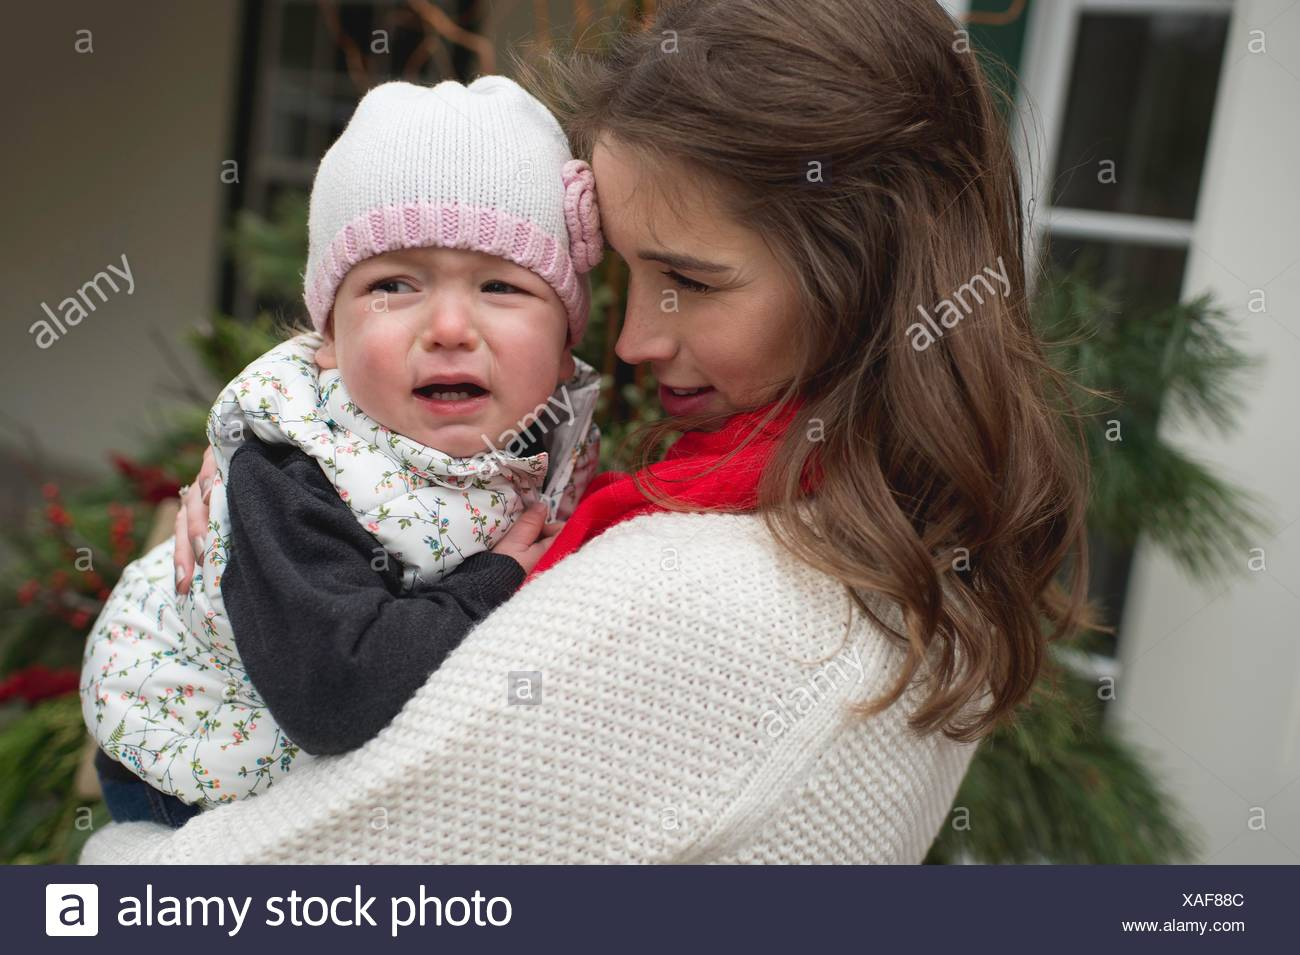 Young girl, crying, being consoled by mother, outdoors - Stock Image